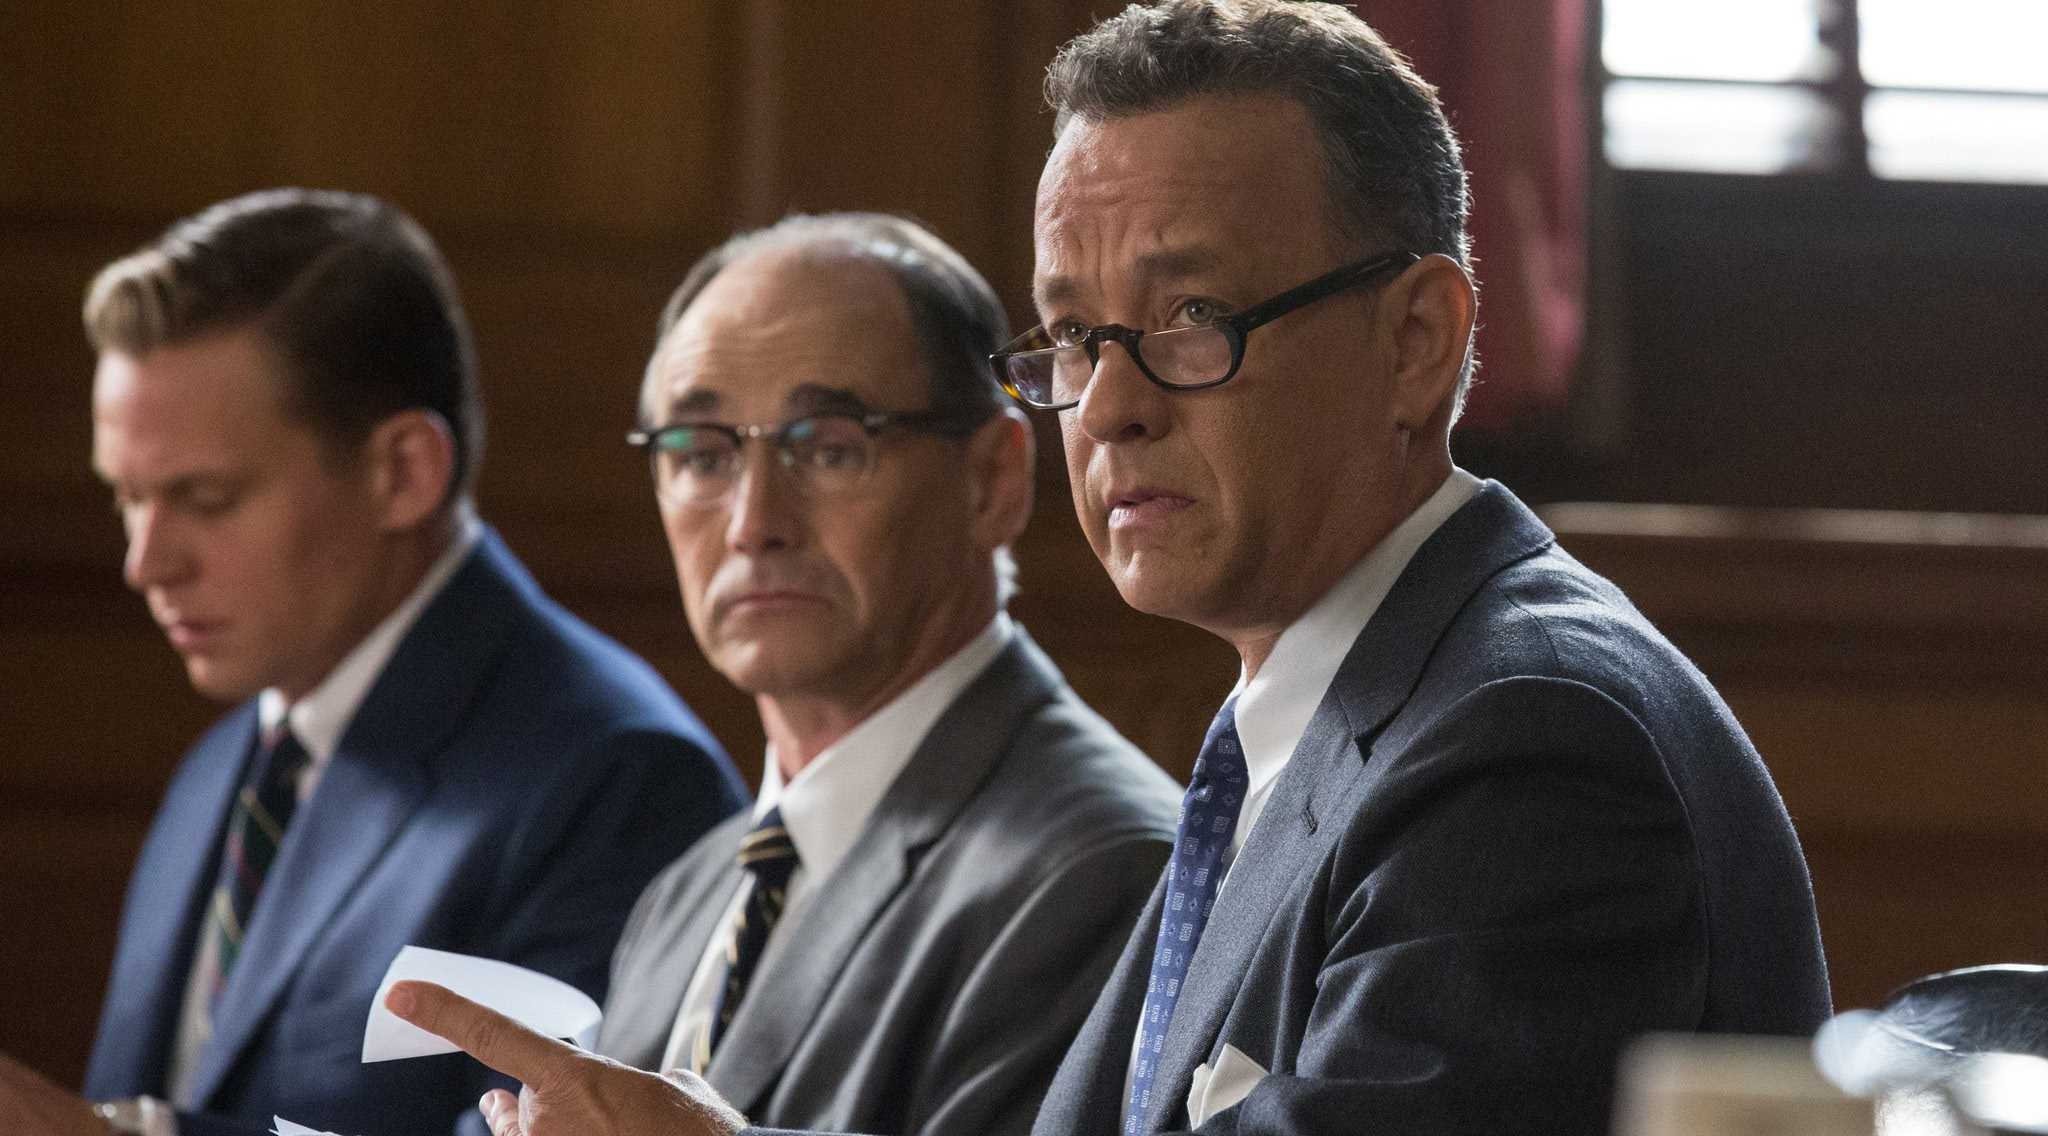 image from orlandosentinal.com Tom Hanks stars in Steven Spielberg's latest film Bridge Of Spies.